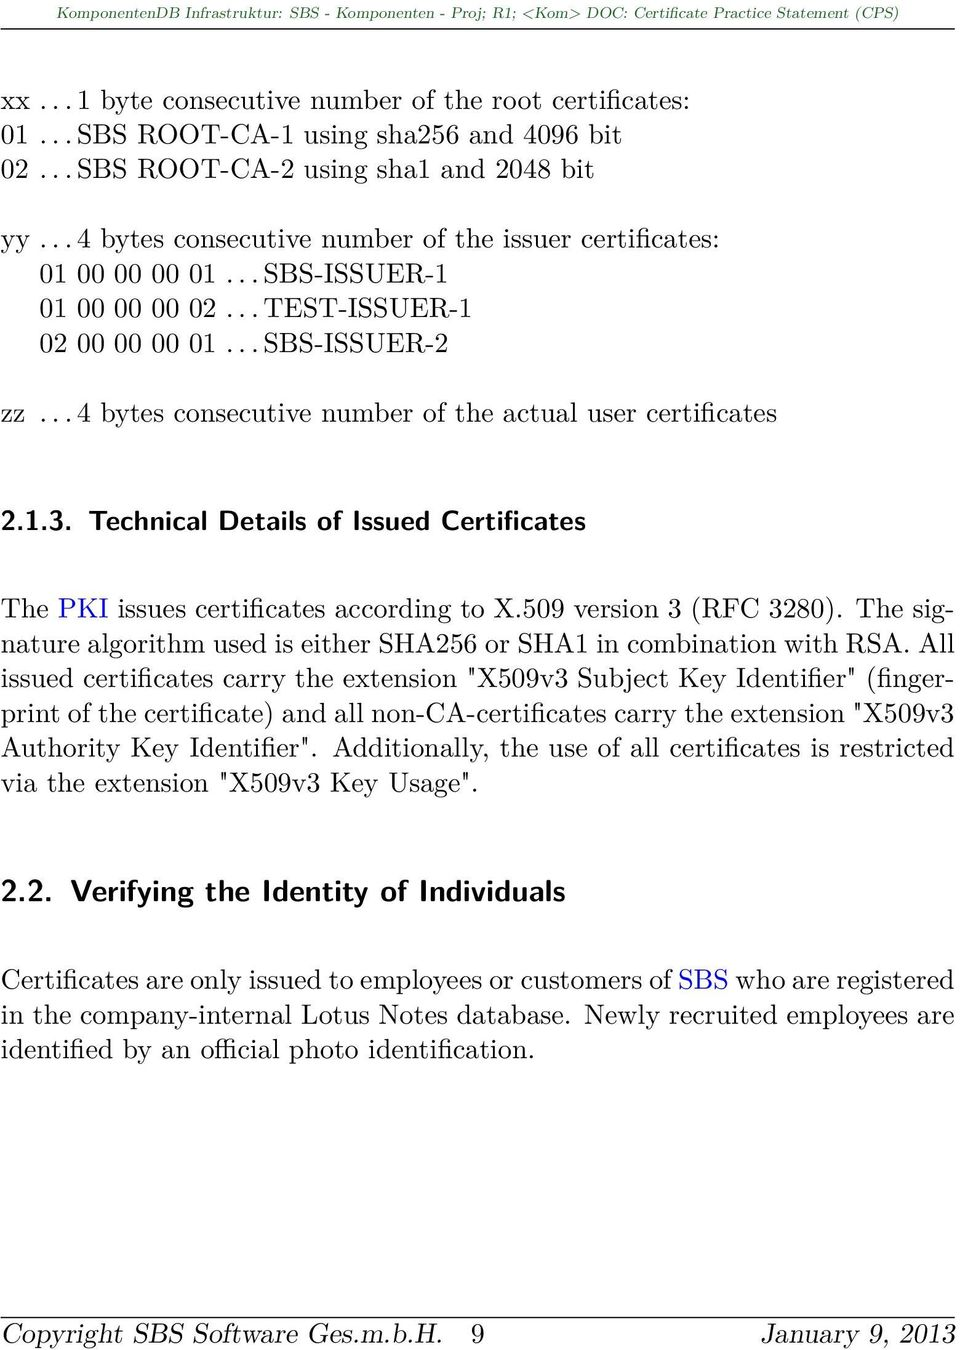 .. 4 bytes consecutive number of the actual user certificates 2.1.3. Technical Details of Issued Certificates The PKI issues certificates according to X.509 version 3 (RFC 3280).